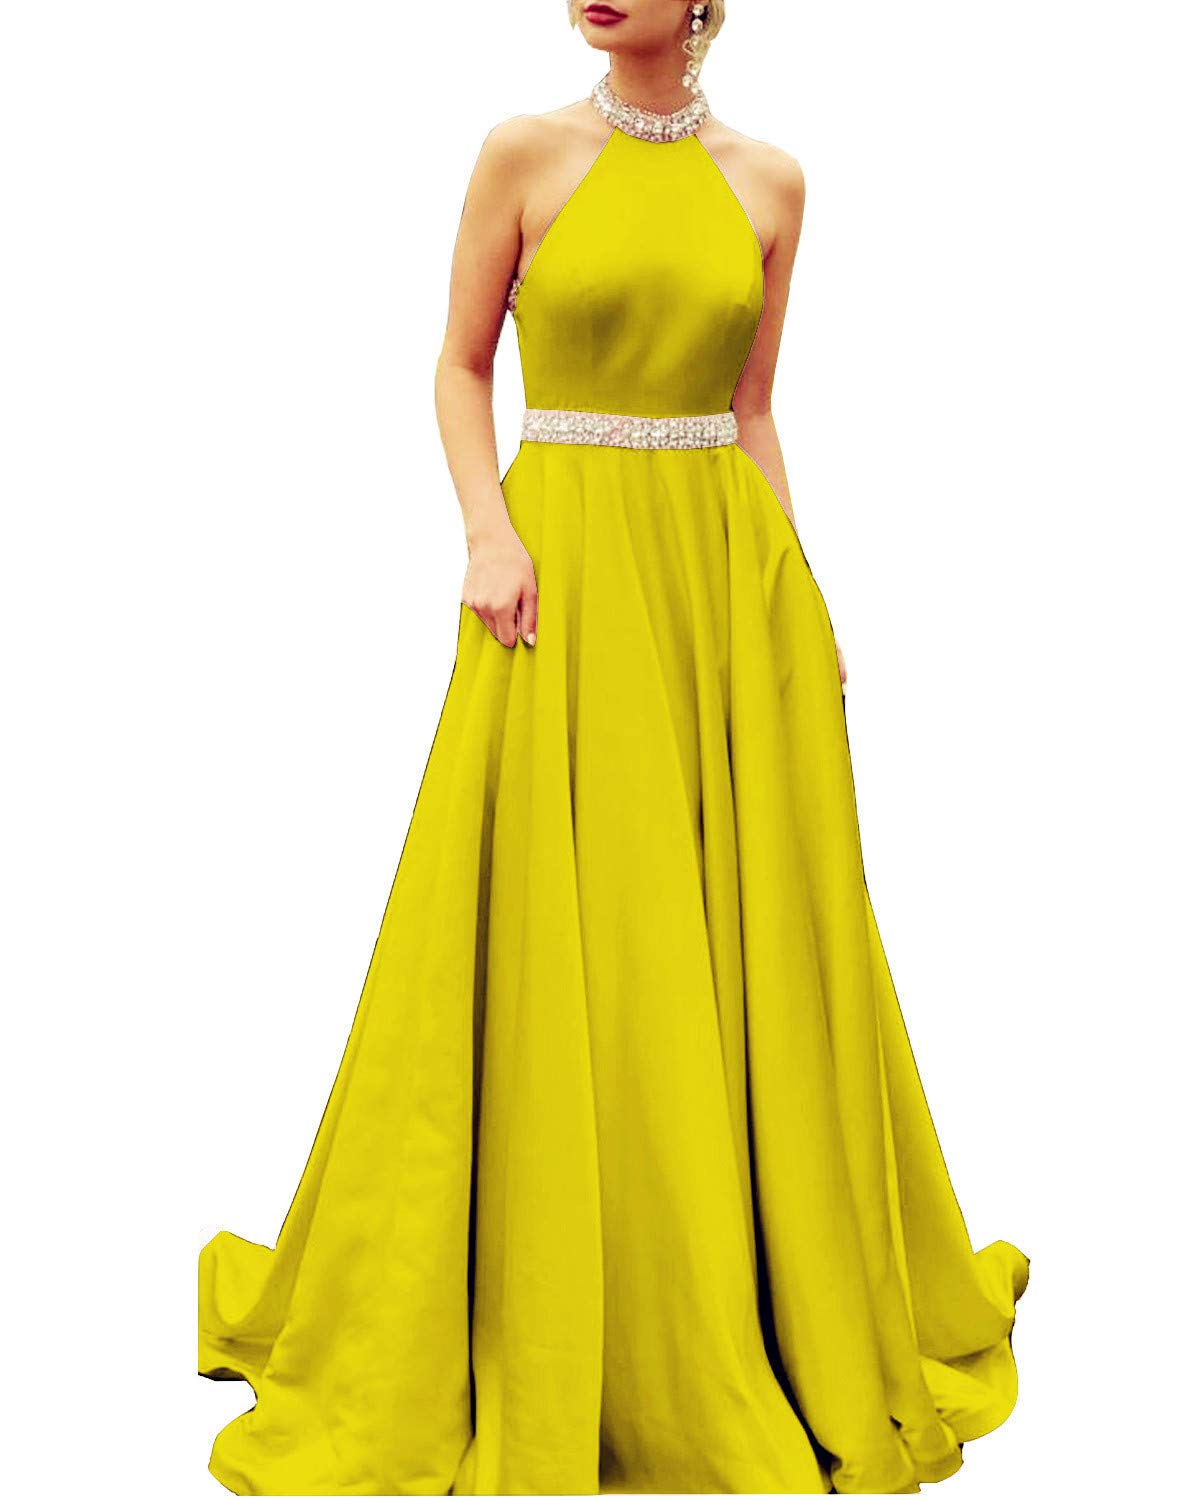 Ever-Beauty Womens Beaded Halter Prom Dress with Pockets Long Sleeveless  Satin Evening Formal Gown Yellow Plus Size 18